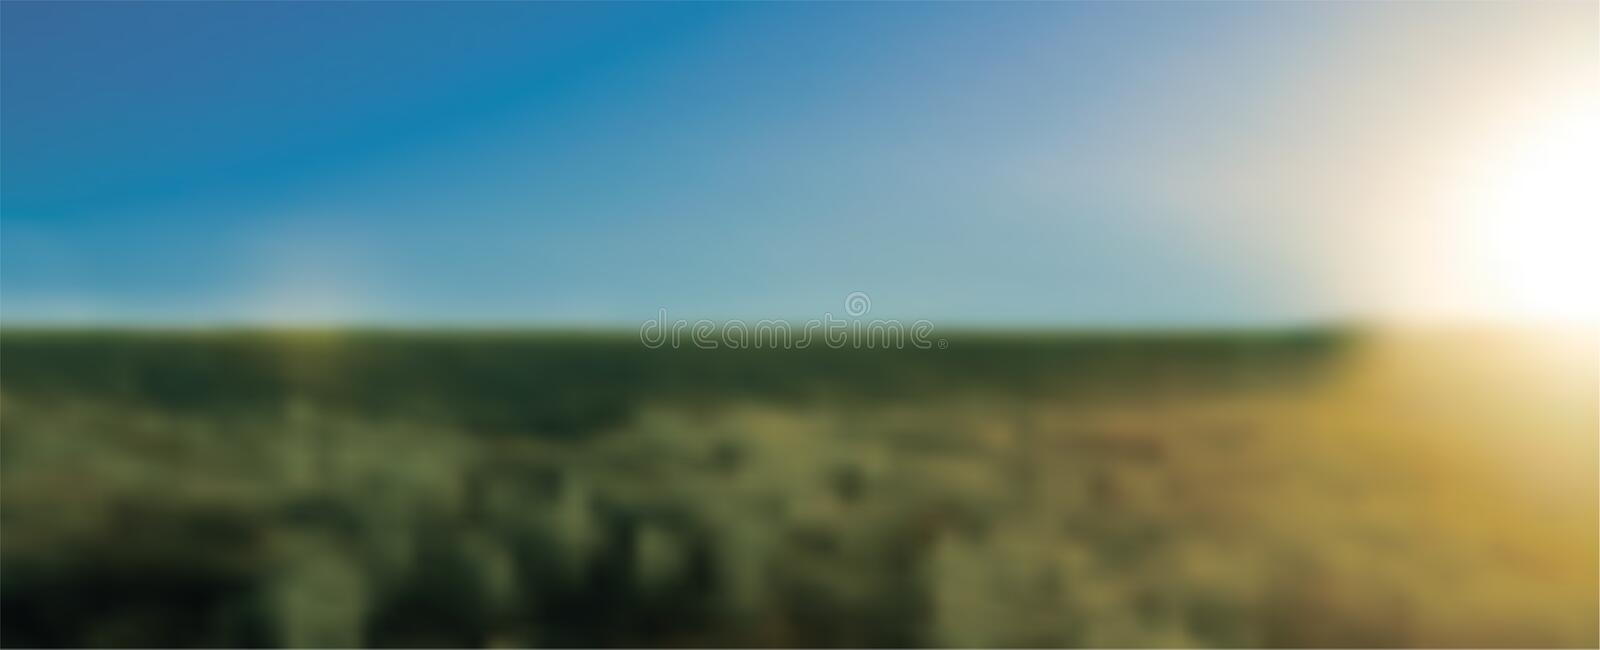 Abstract green blurred gradient background with sunlight. Nature backdrop. Vector illustration. Ecology concept for your royalty free illustration